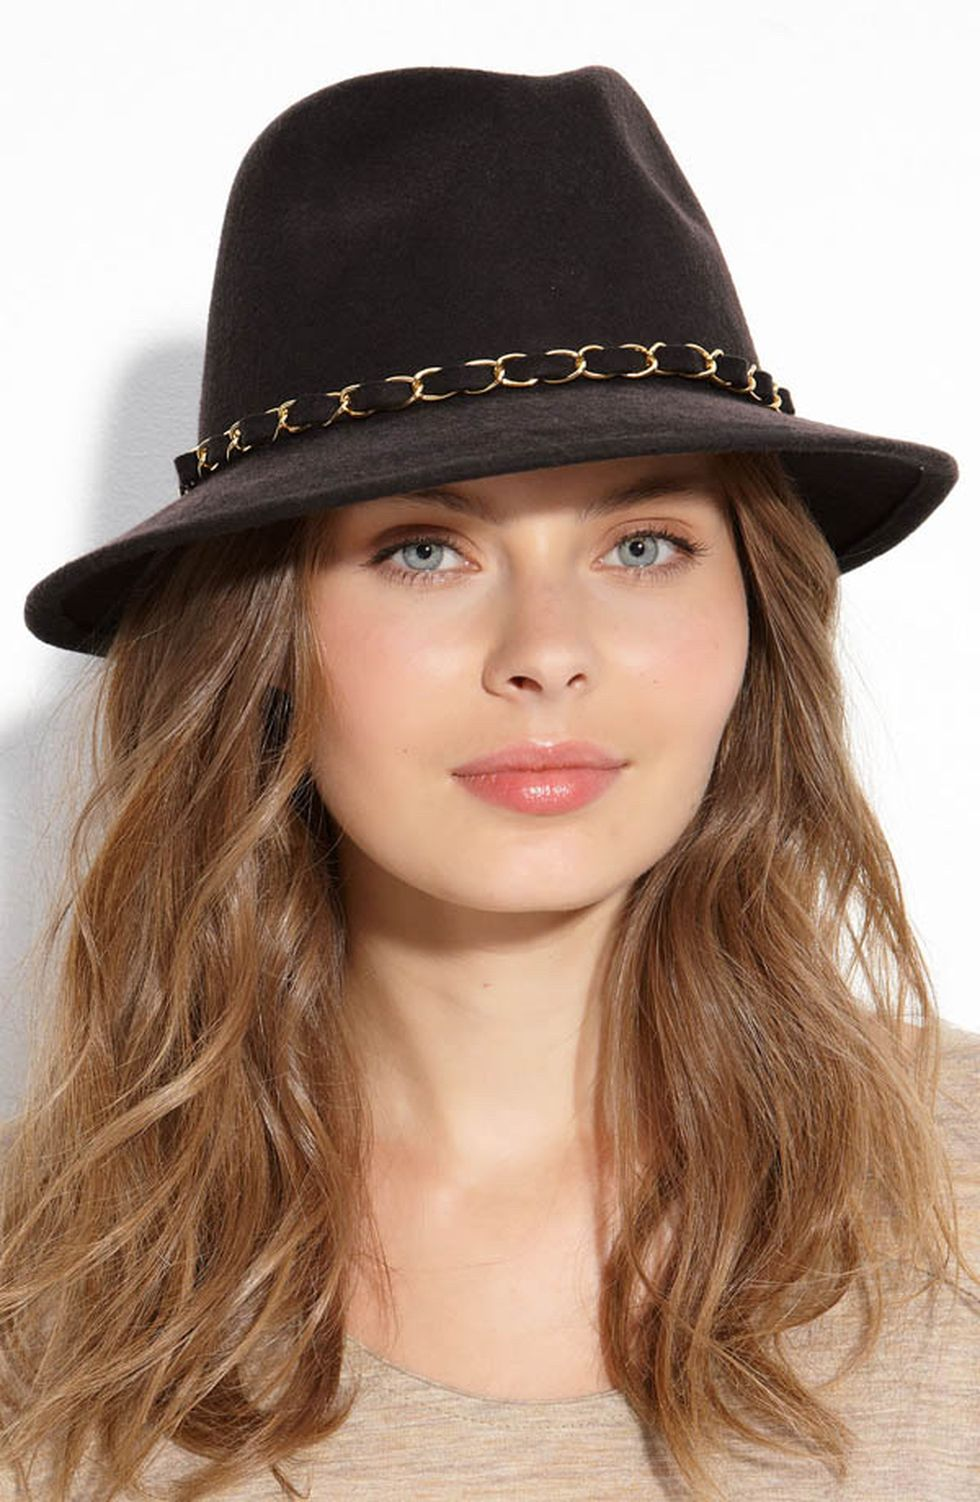 Fashionable Women Hats For Winter And Snow Outfits 47 -7483